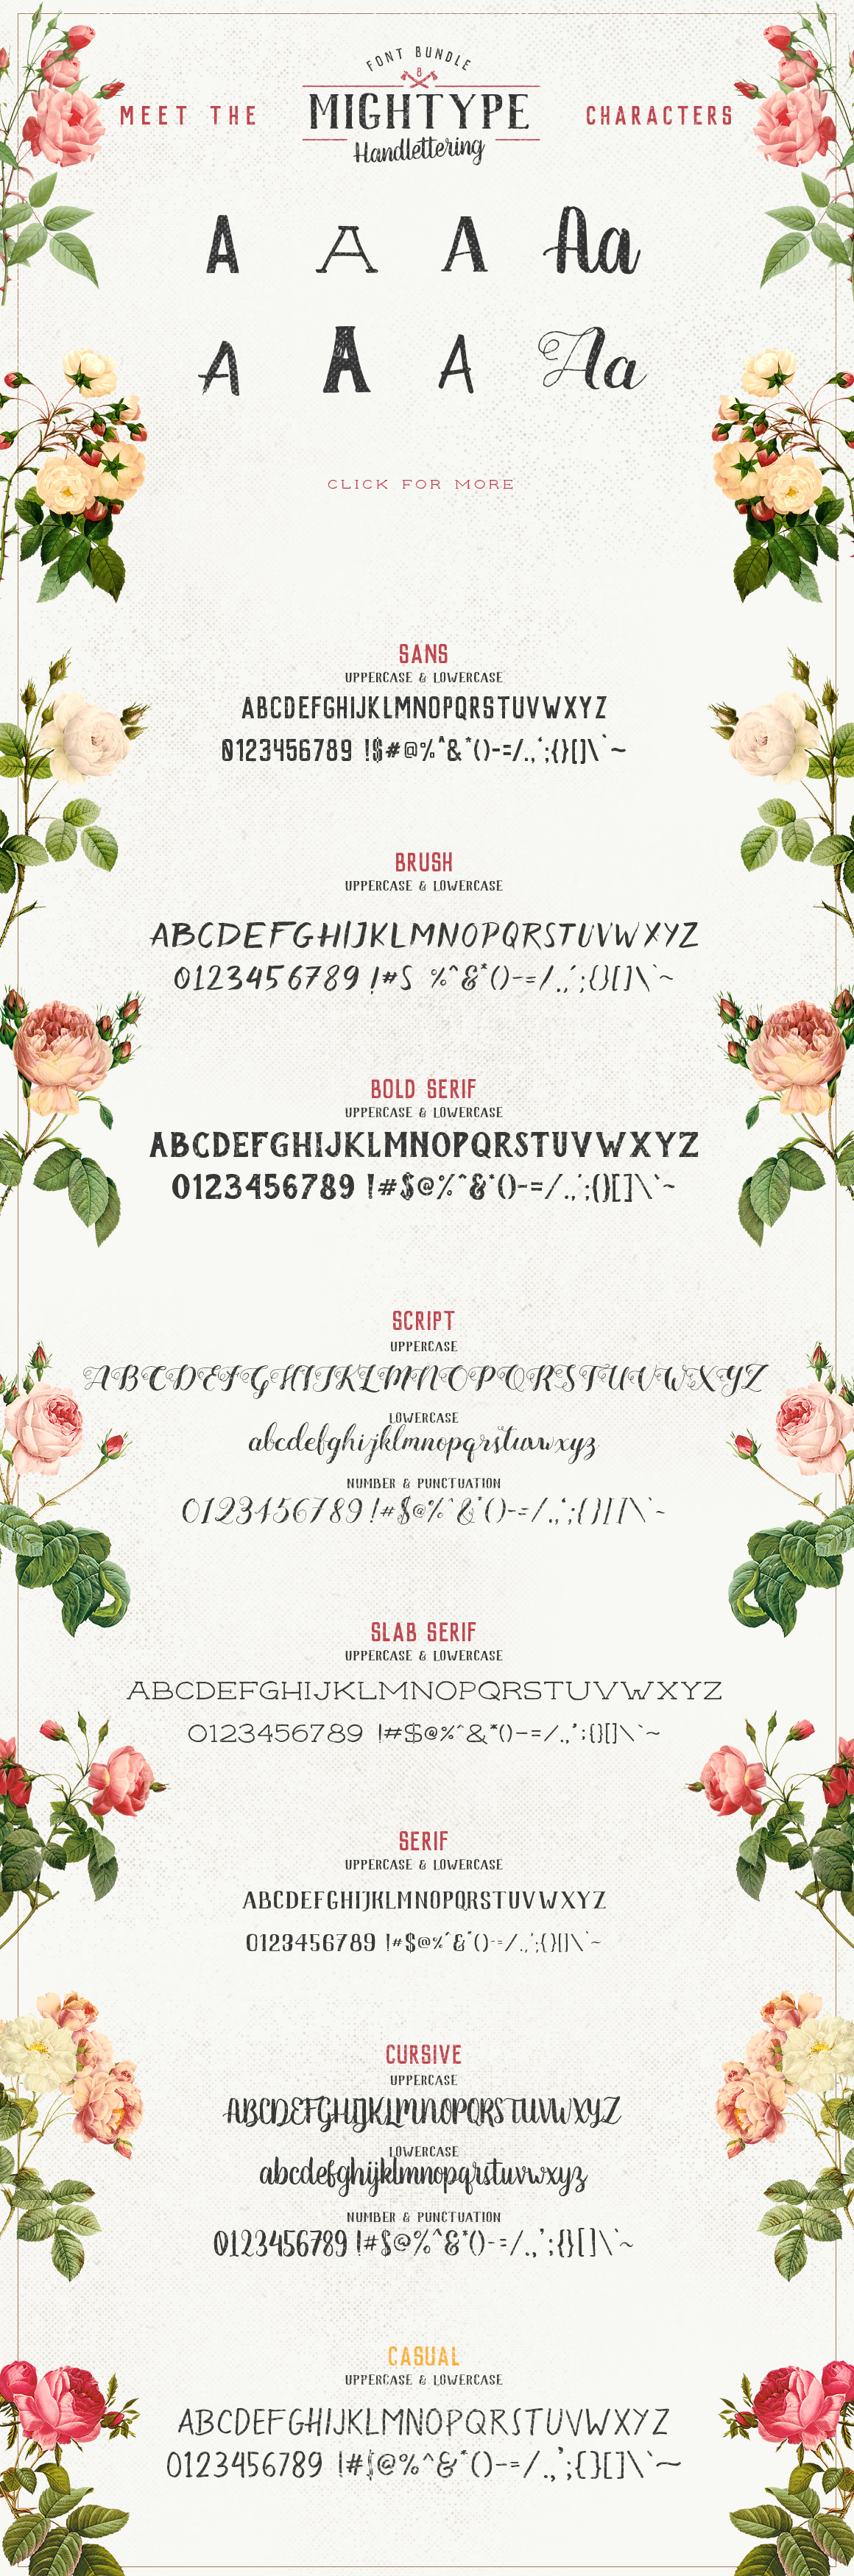 Mightype Handlettering Font Pack example image 4